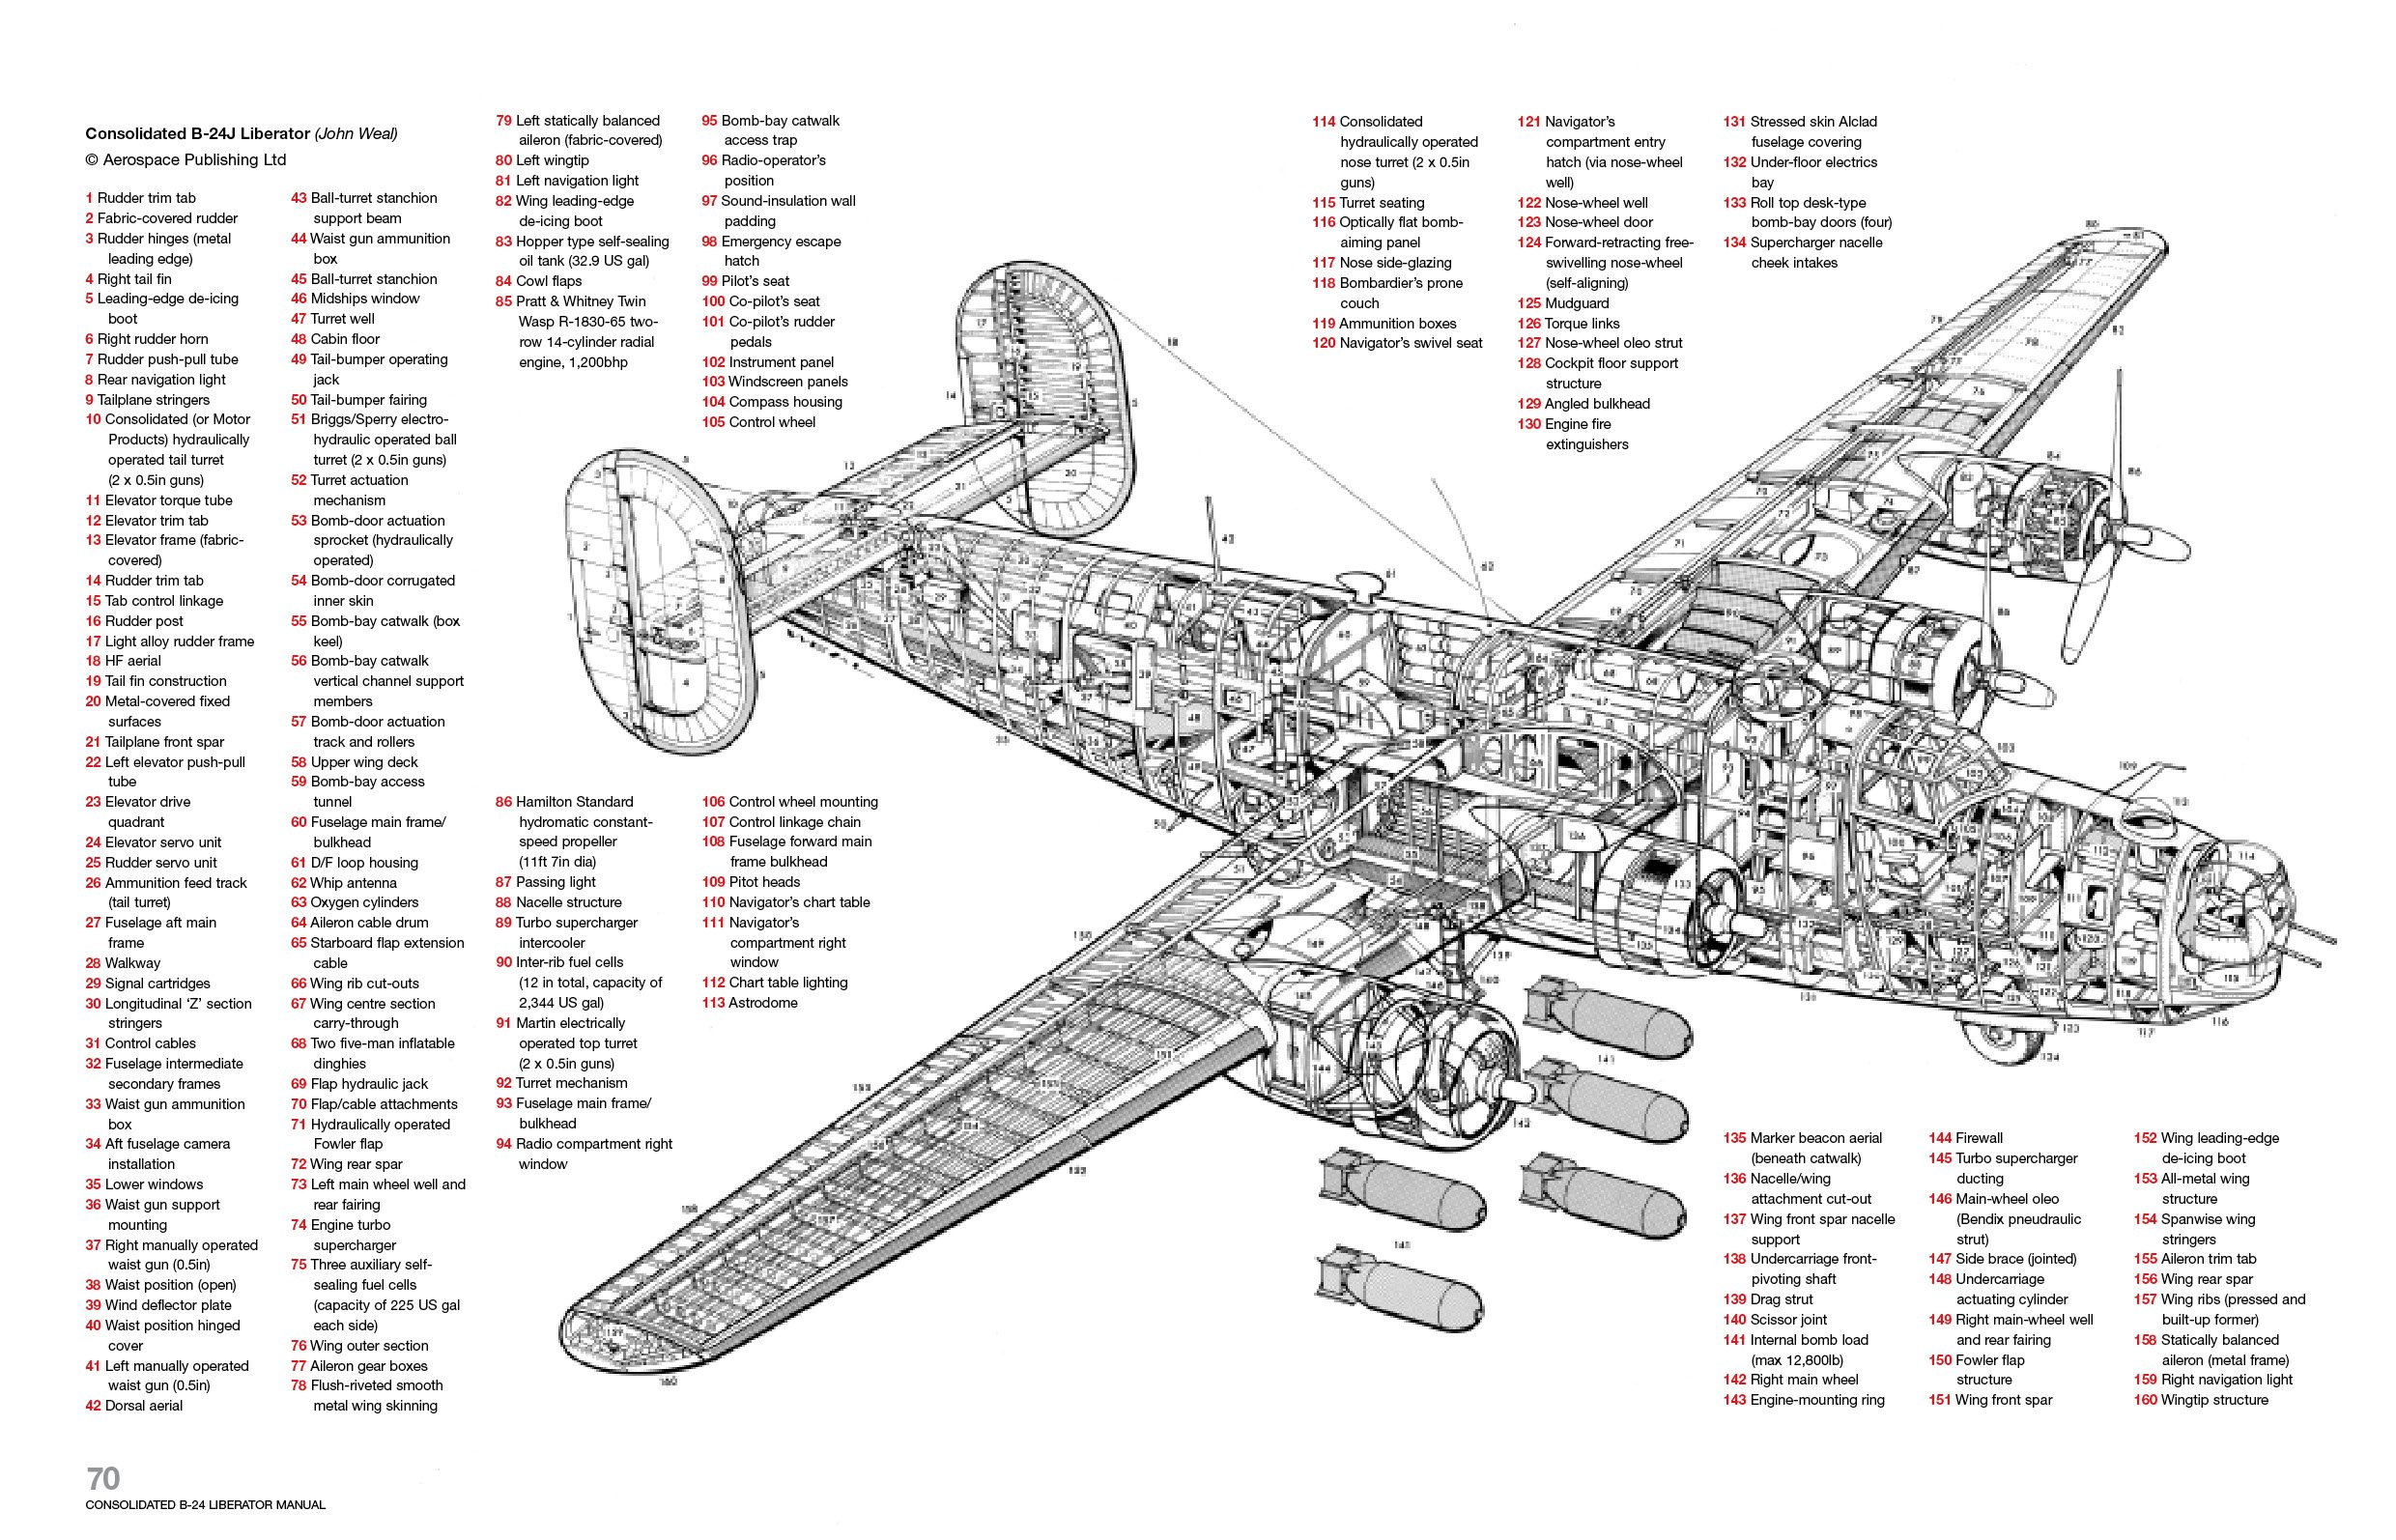 Consolidated B-24 Liberator Manual: An Insight into Owning ...